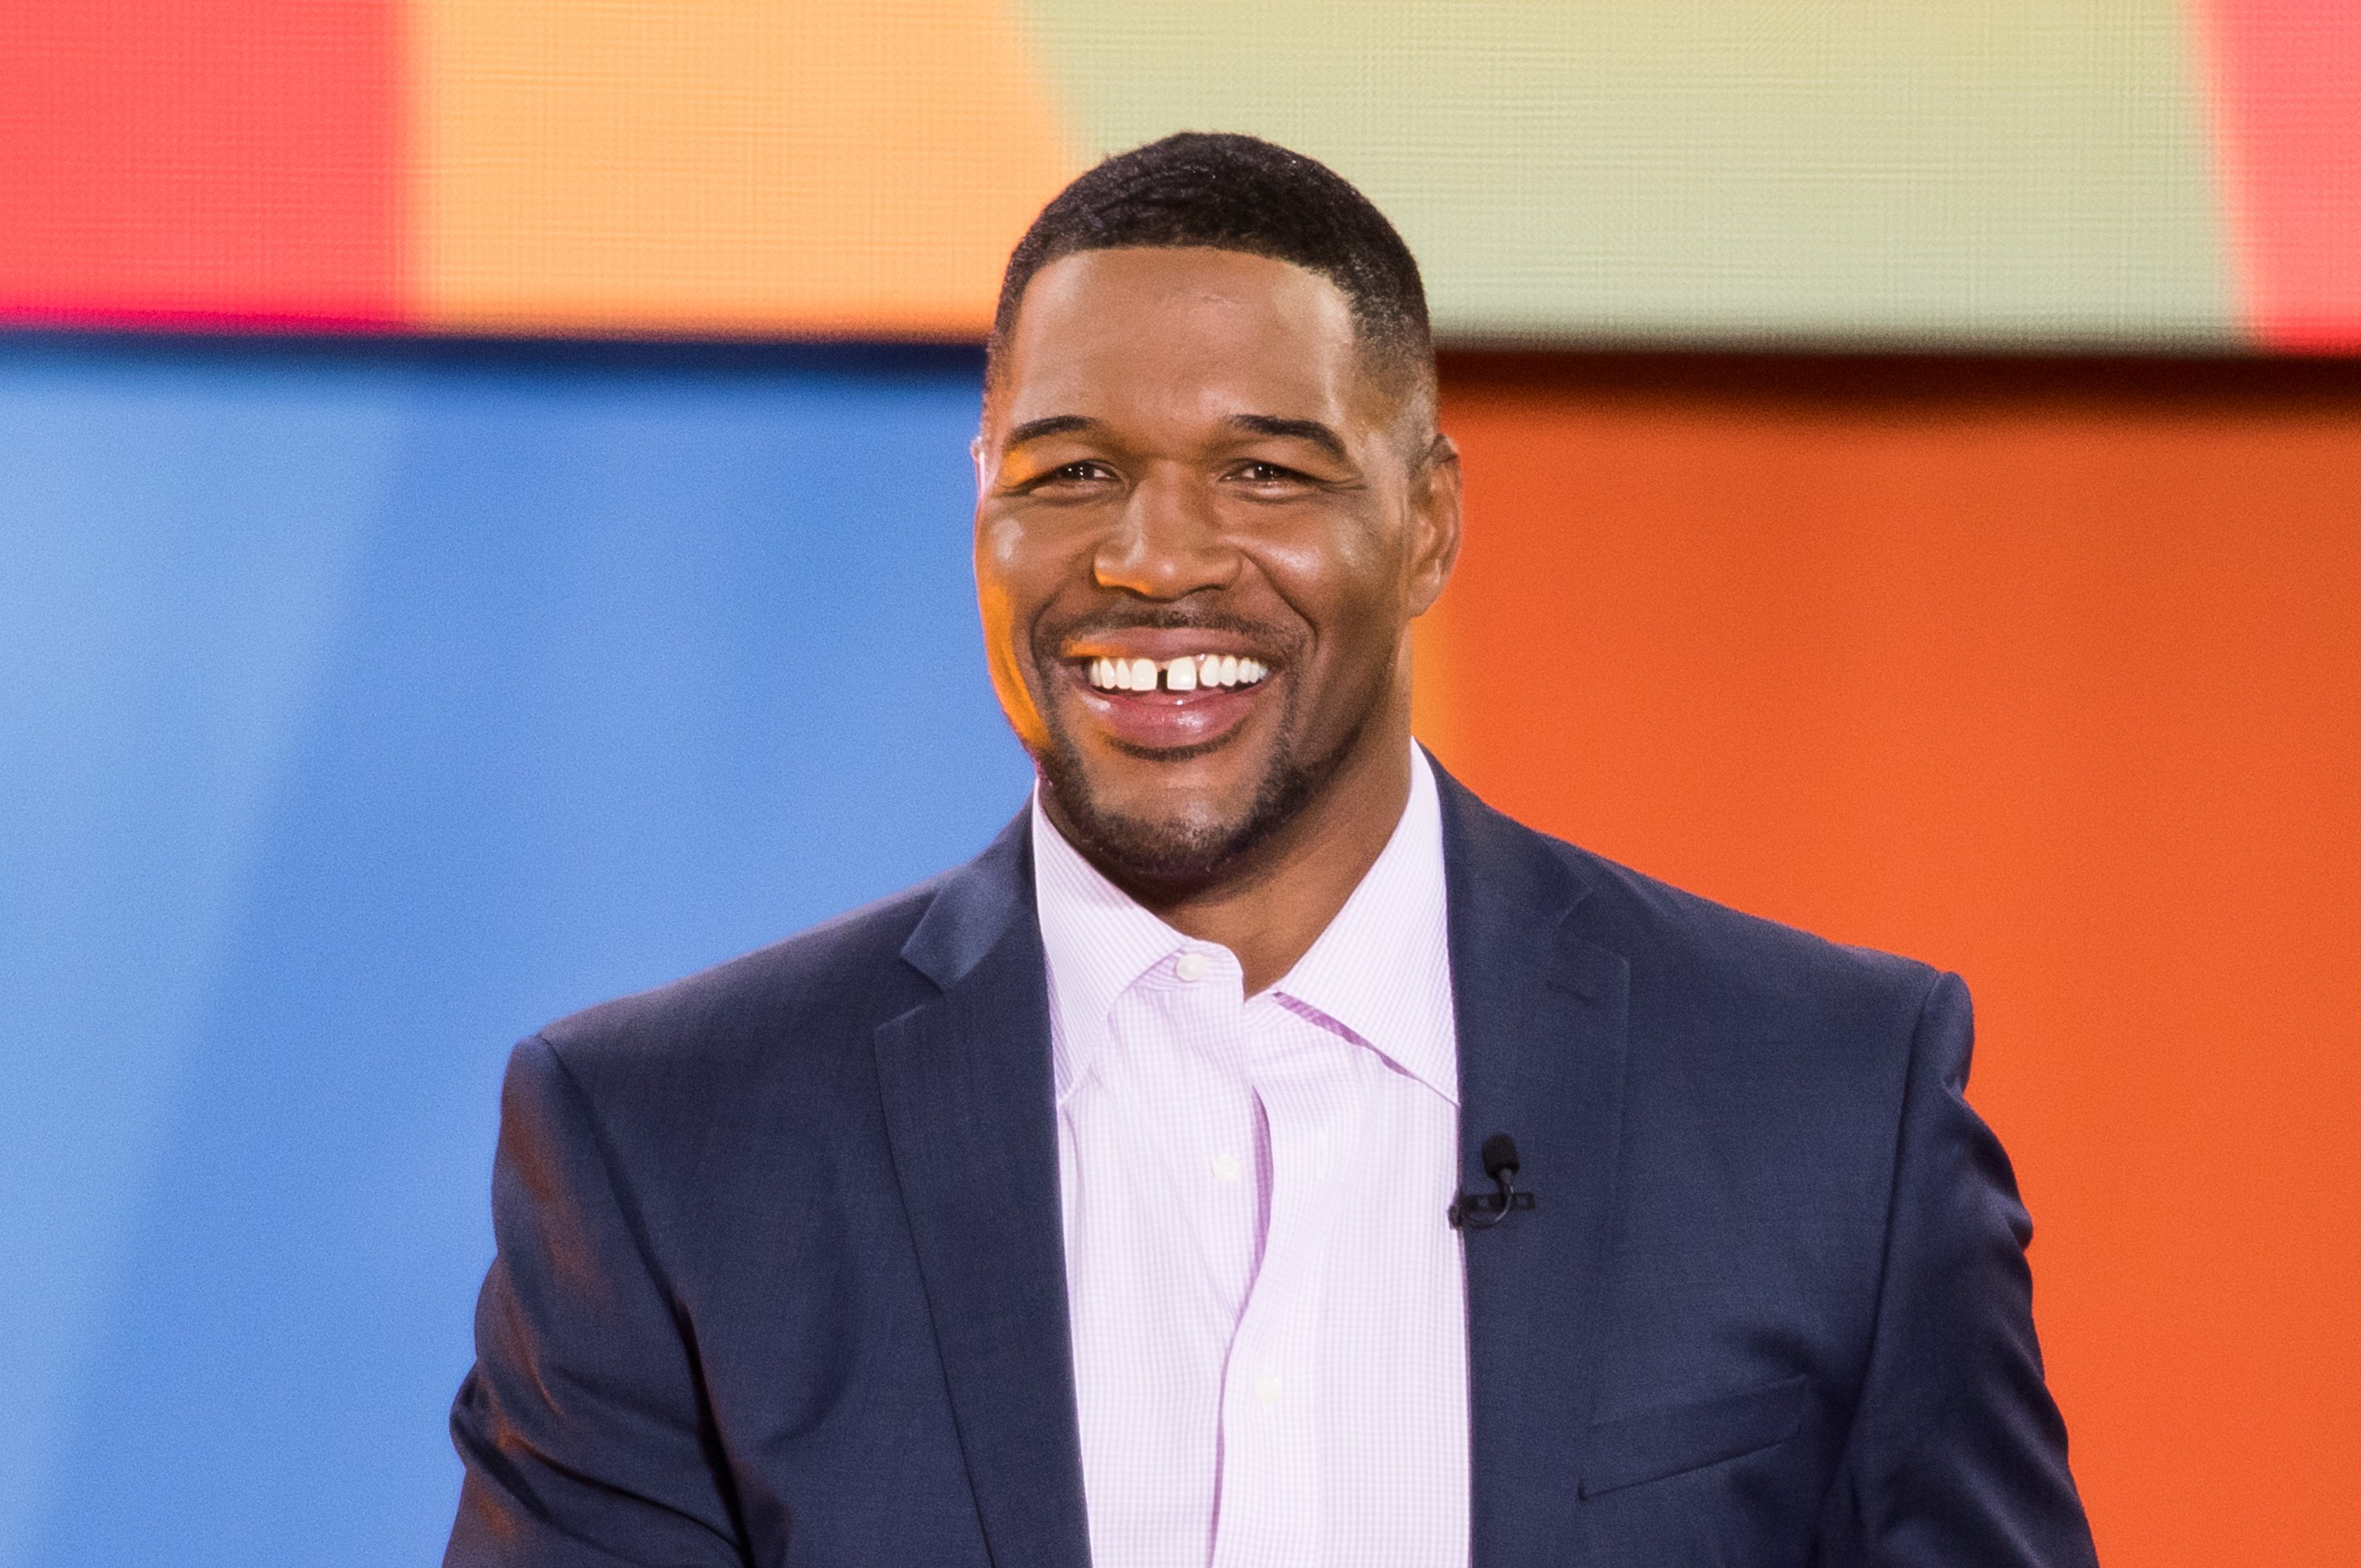 """Michael Strahan on the set of ABC's """"Good Morning America"""" on July 6, 2018. 